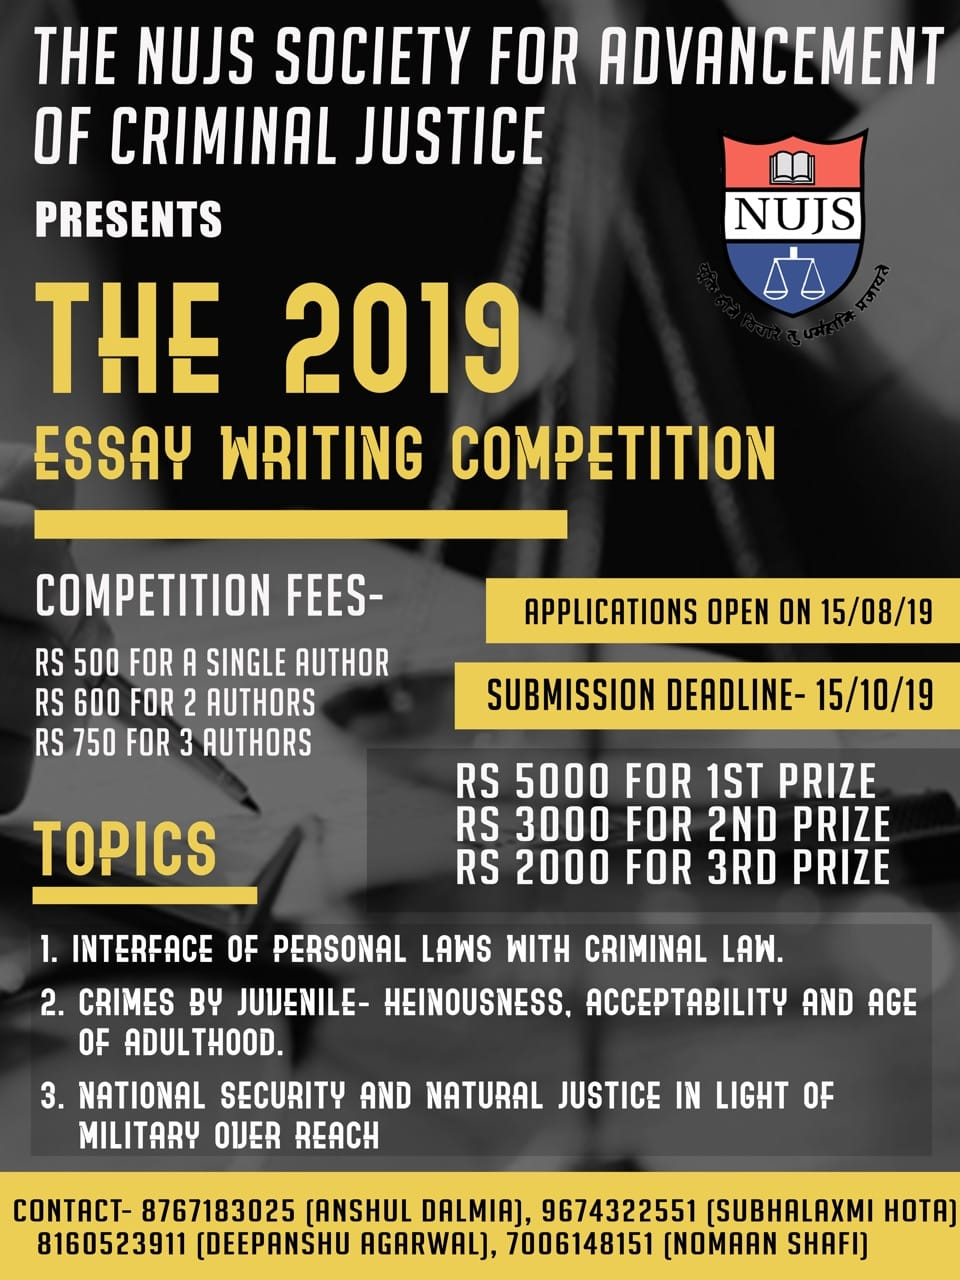 NUJS' 6th Edition of SACJ Annual Essay Writing Competition: Prize Worth Rs. 10K, Submit by Oct 15